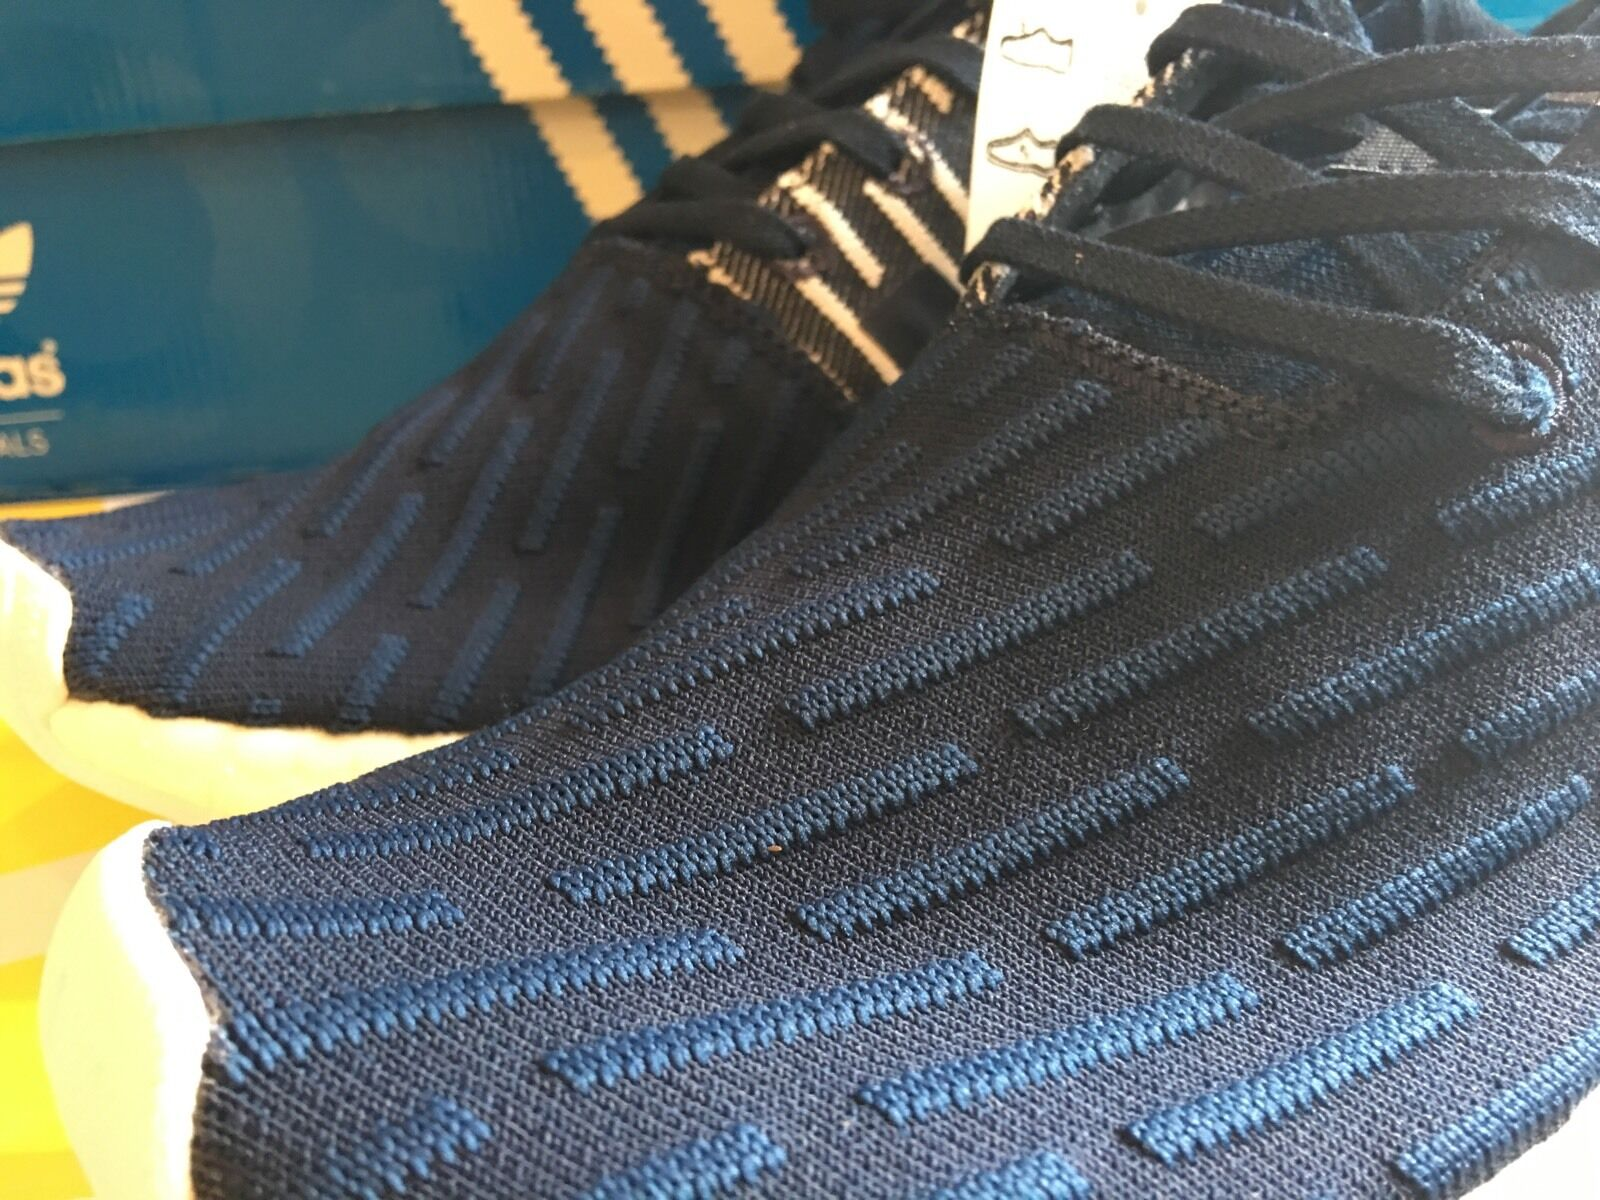 Adidas Latest Ultra Boost 4.0 Triple Noir9 Latest Adidas Release 2018 Trainers Chaussures cc53e6